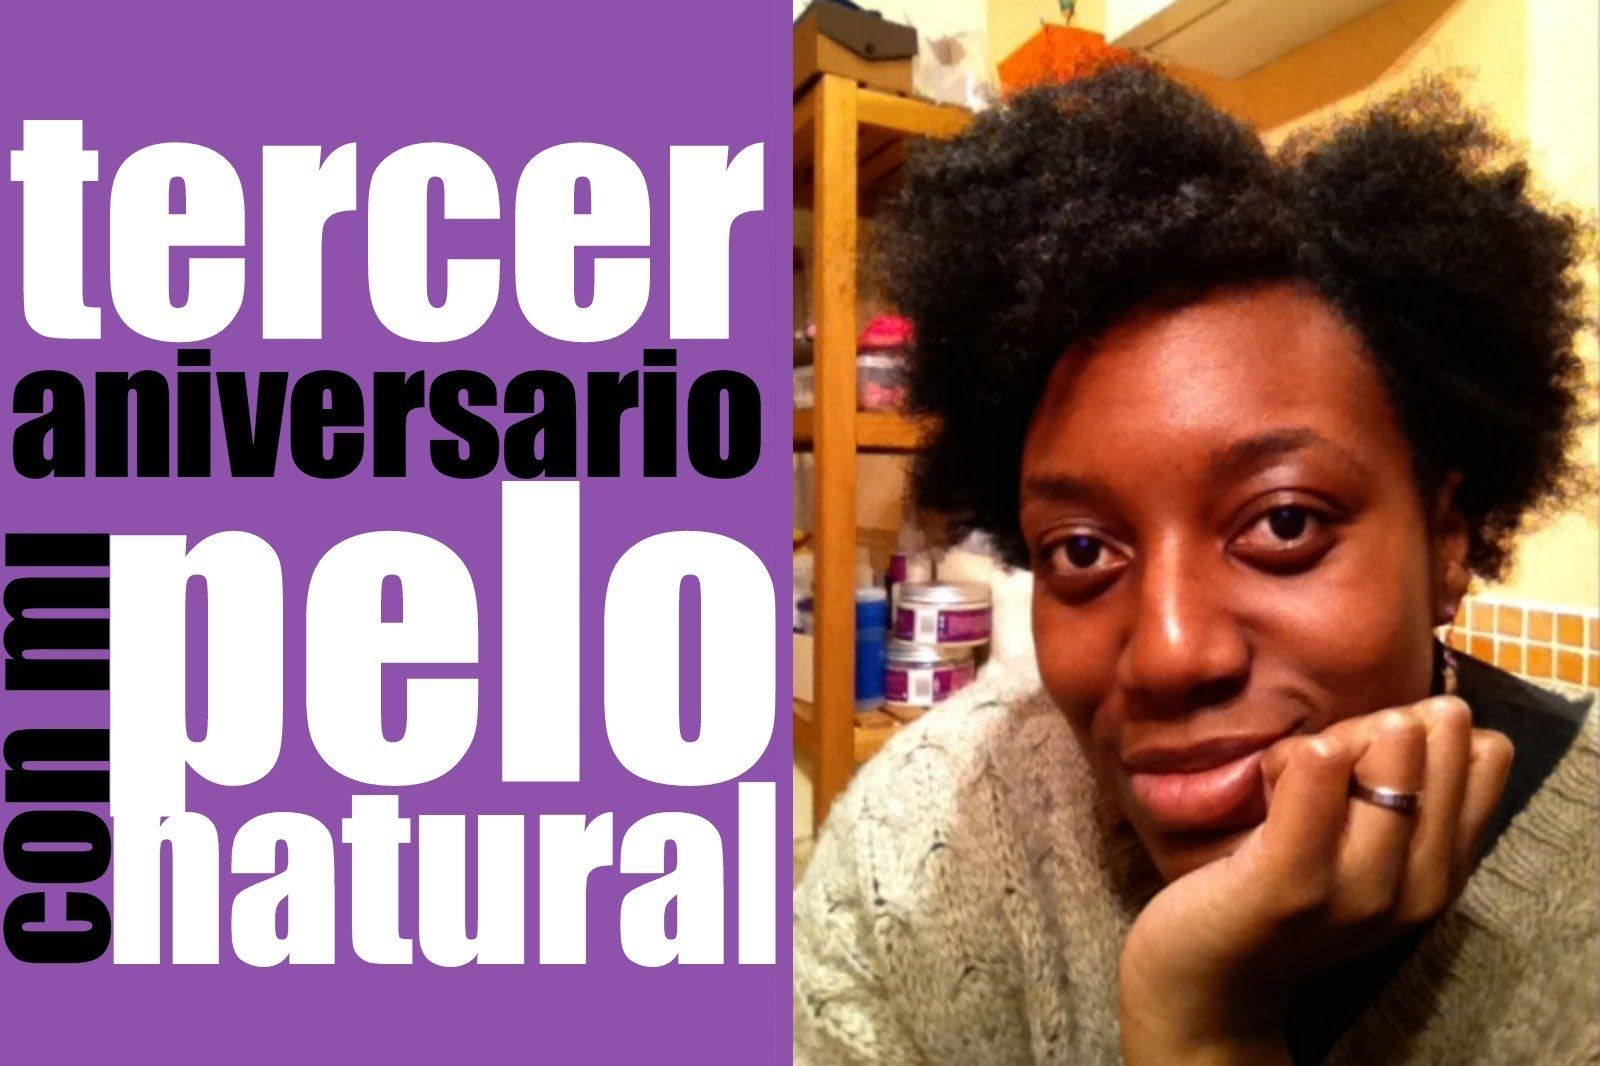 213 - Tercer año natural  http://youtu.be/p8_AioZXxYs